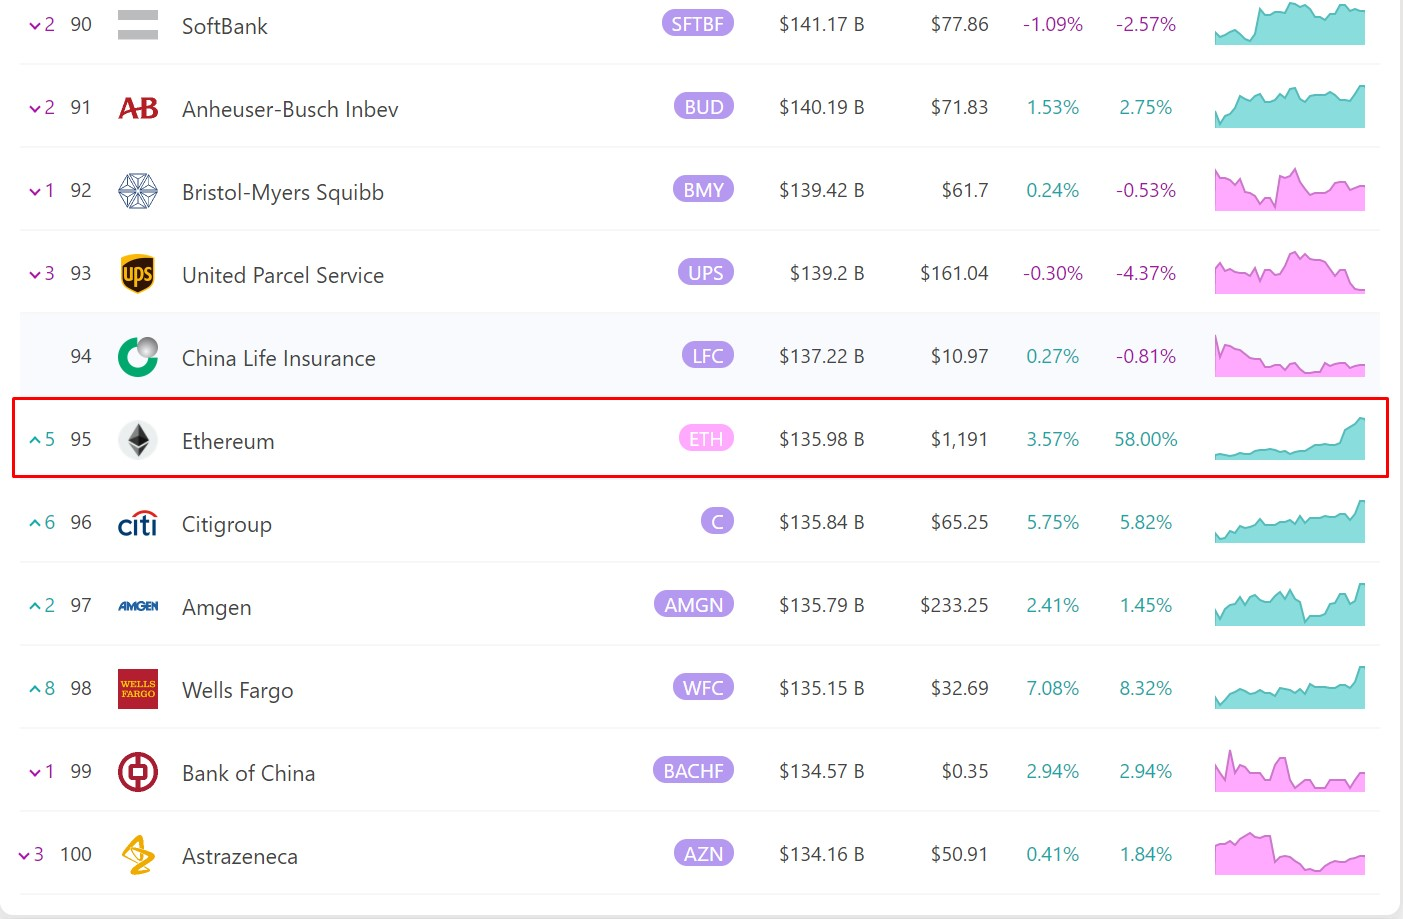 Ethereum bumps into the 95th place